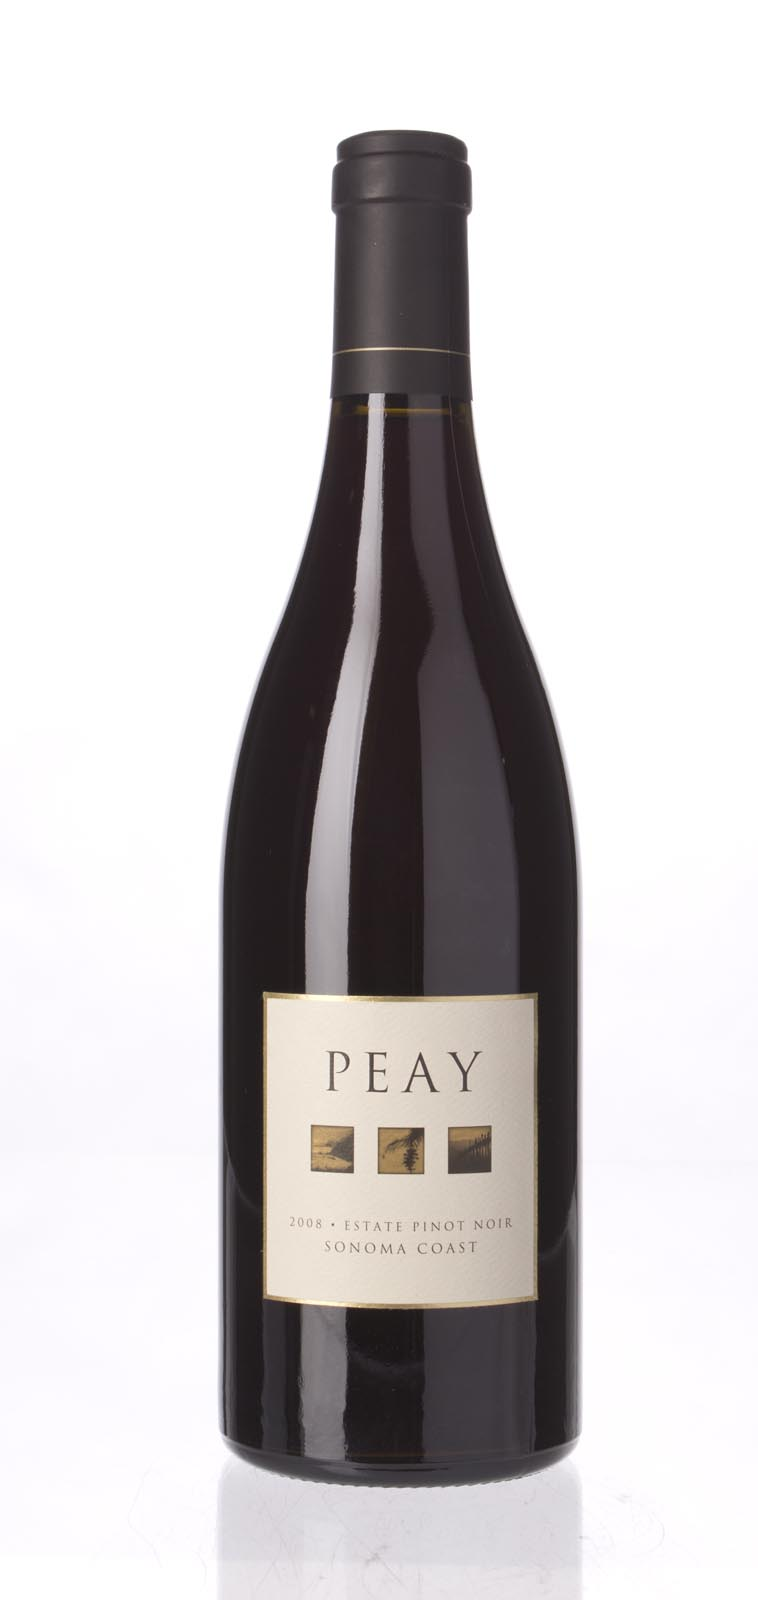 Peay Vineyards Pinot Noir Sonoma Coast 2008, 750mL () from The BPW - Merchants of rare and fine wines.